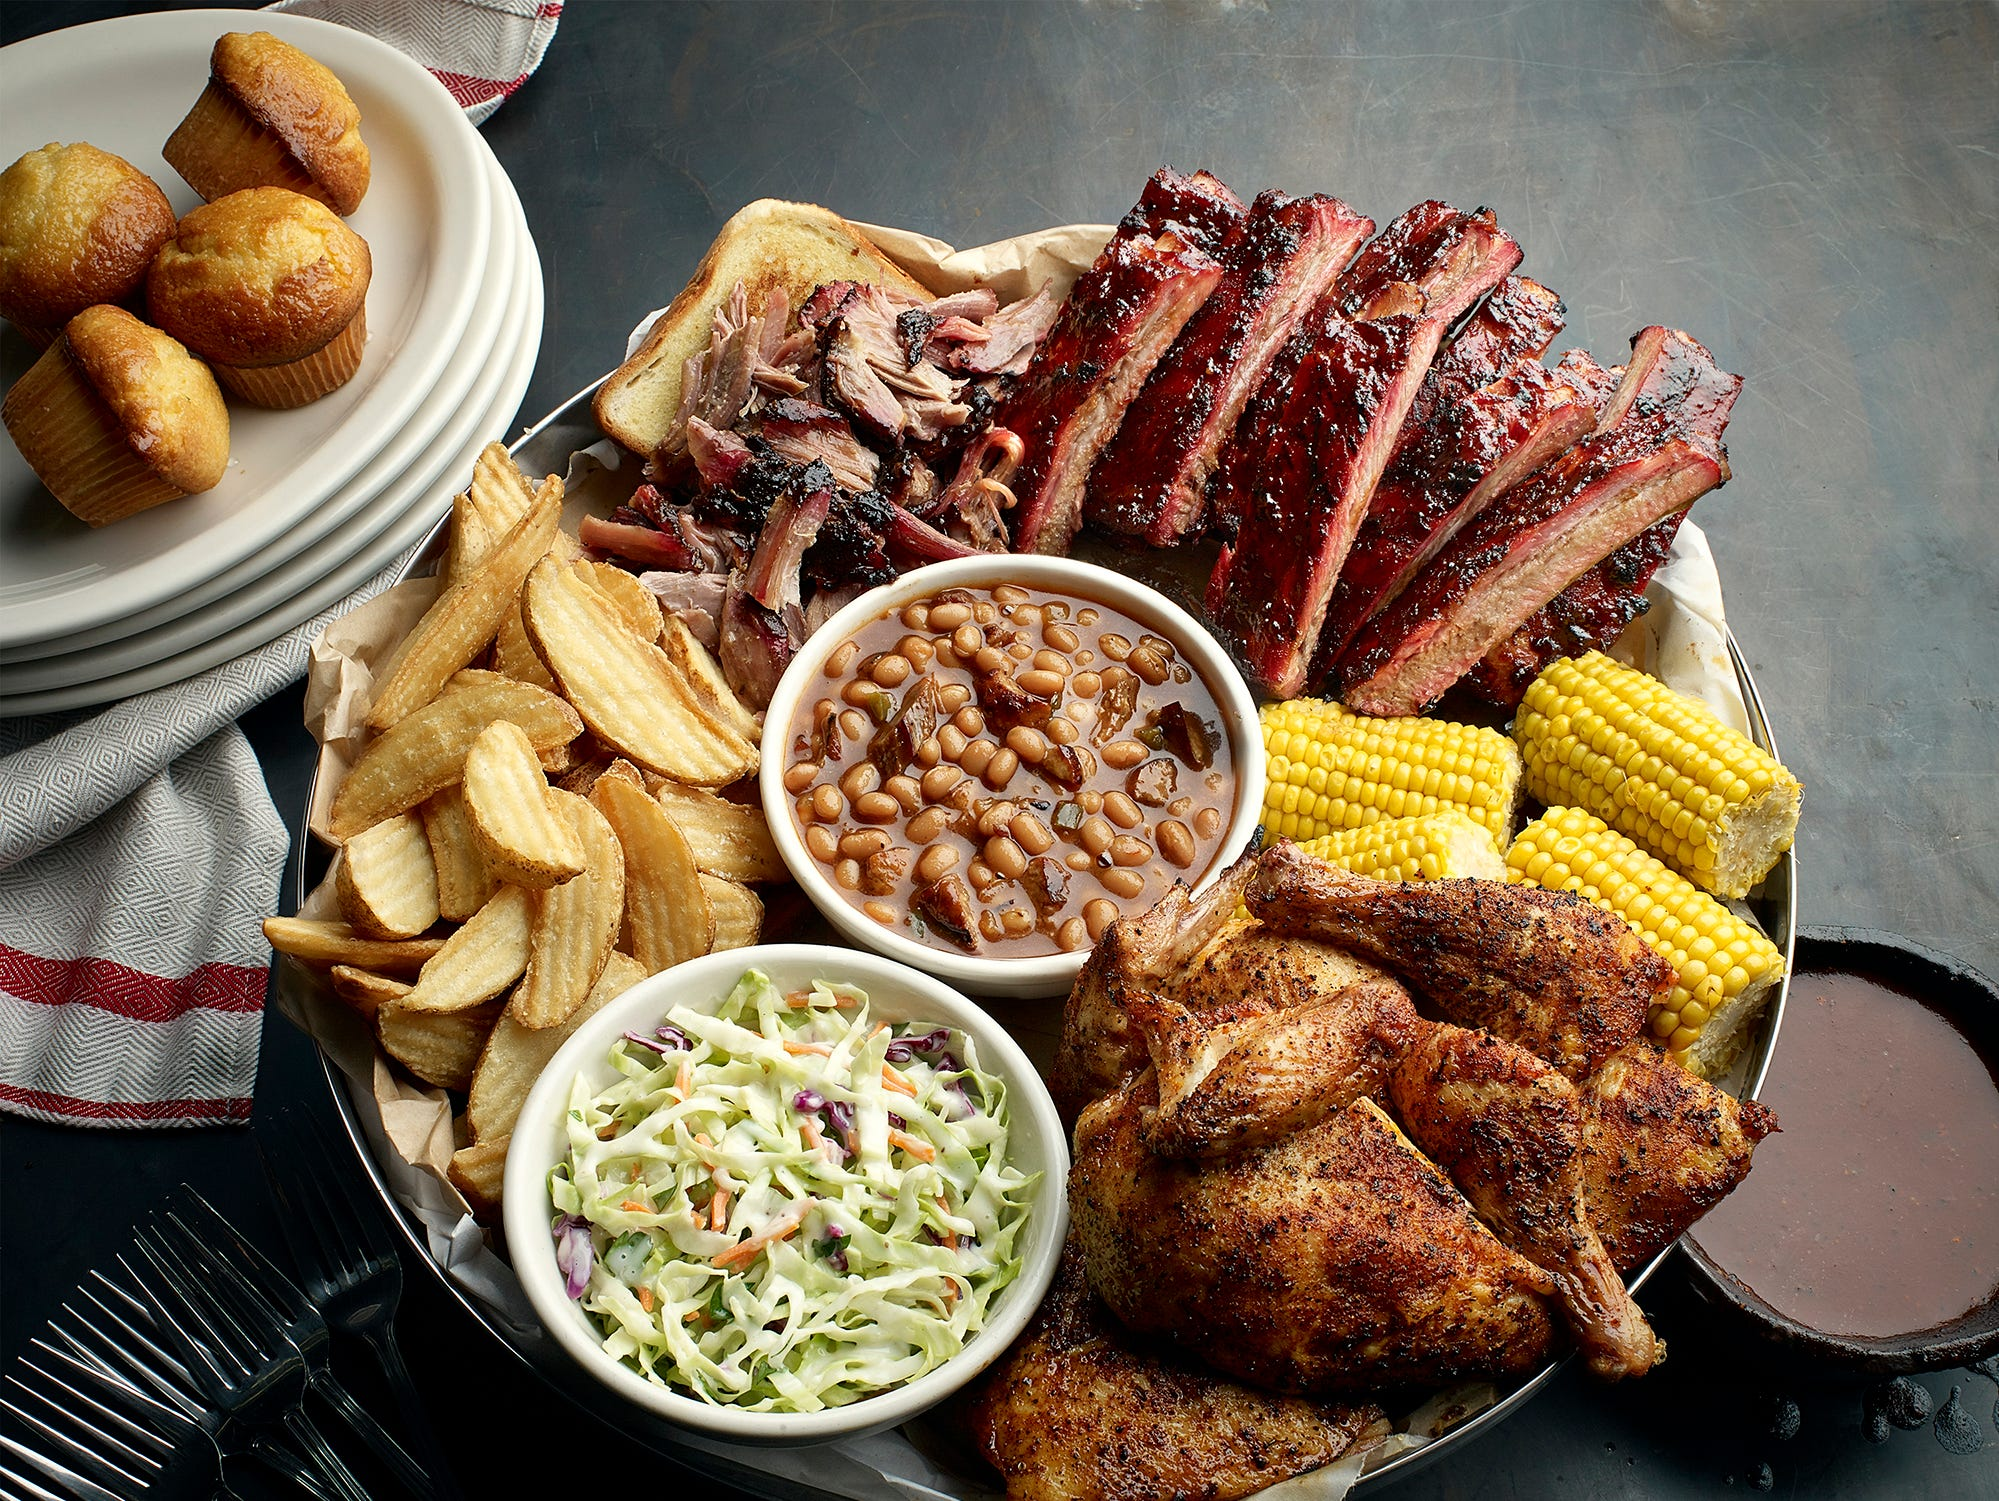 Famous Dave's   Nov. 11-12, enjoy the free Two Meal Salute meal that includes a choice of two meats and is served with a corn bread muffin and one side.   Details: 1011 N. Dobson Road, Mesa. 480-615-1444. Also, 16148 N. 83rd Ave., Peoria. 623-979-3706. Other locations at famousdavesbbq.com.